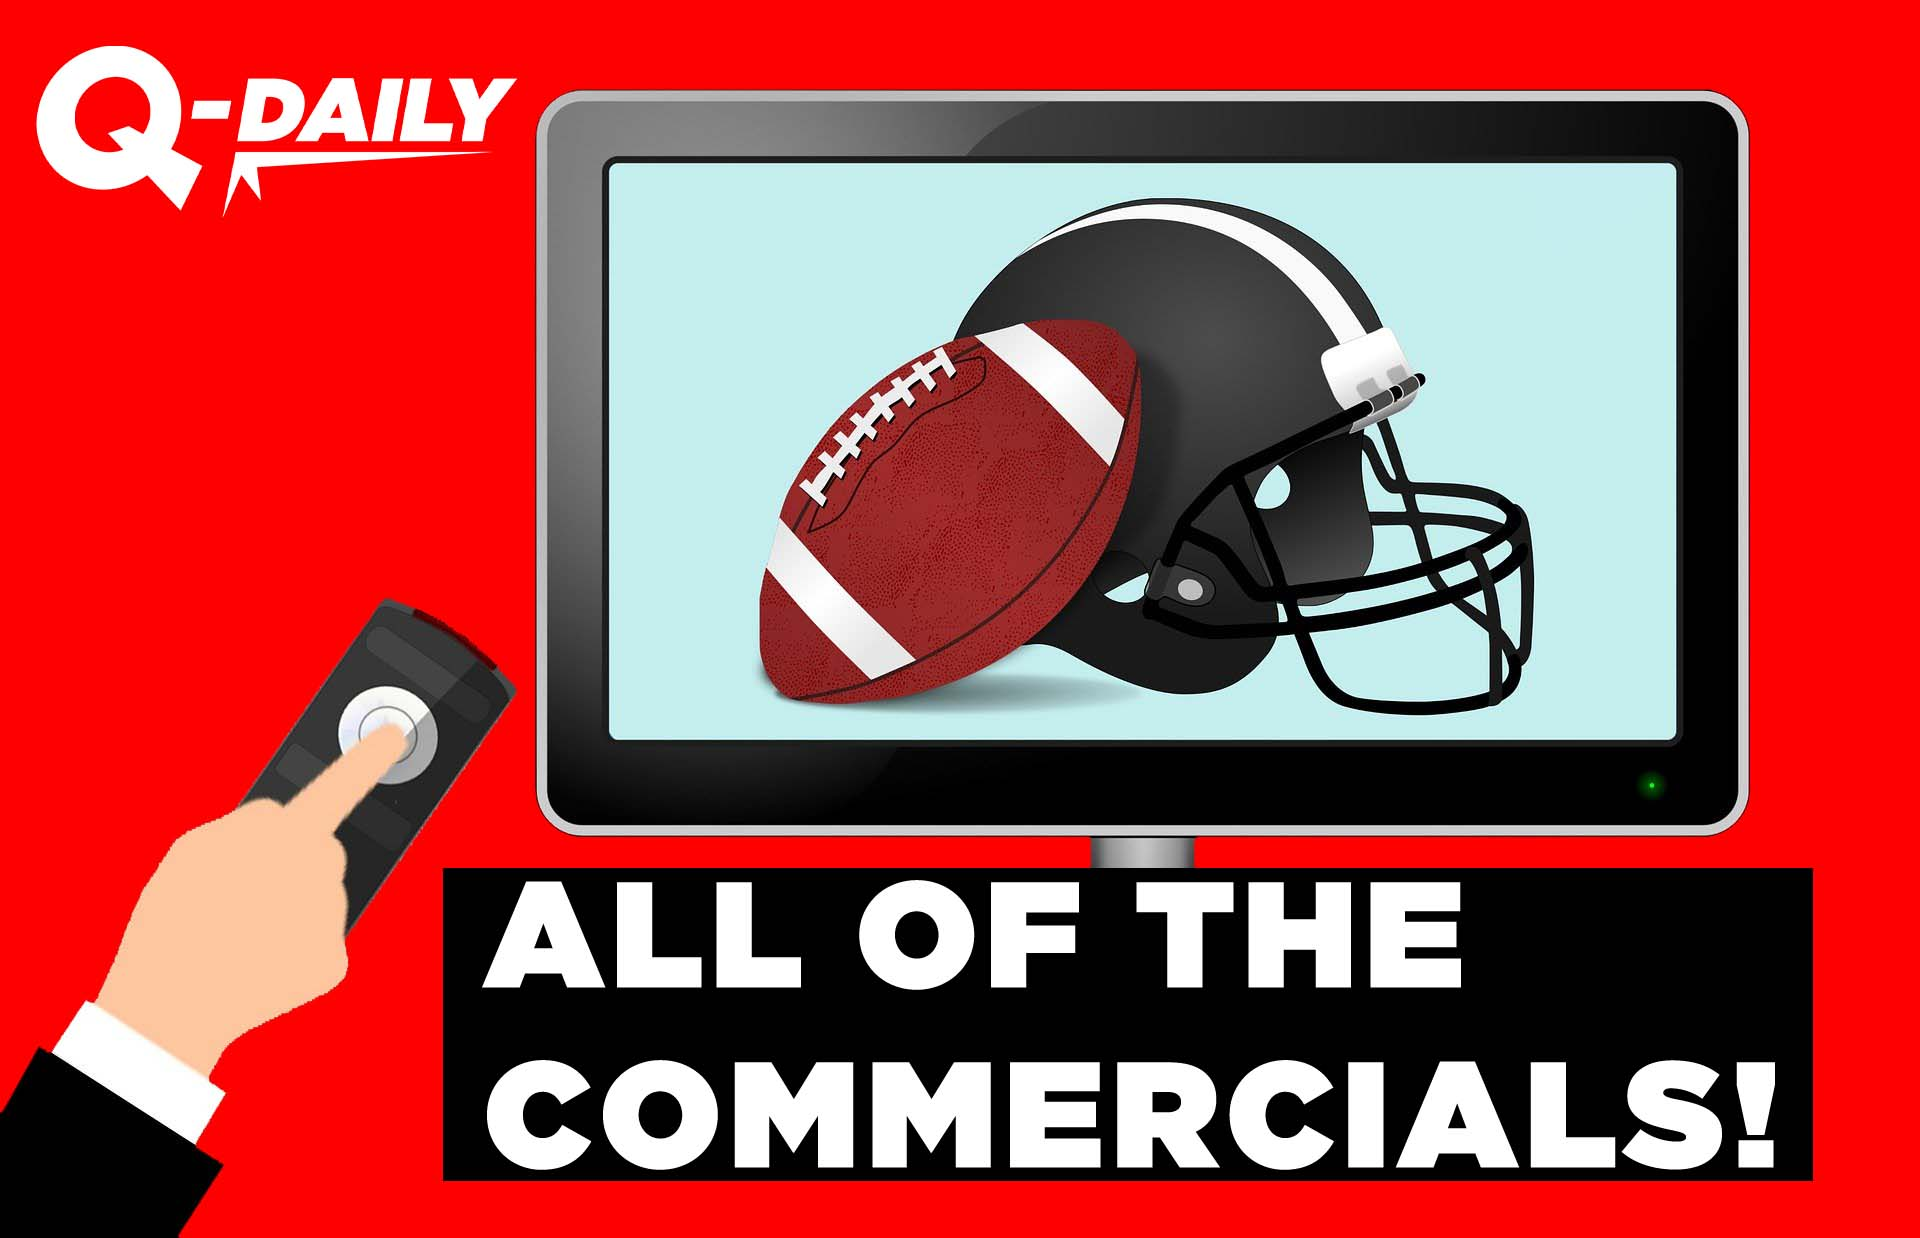 All of The Super Bowl Commercials | Q-Daily